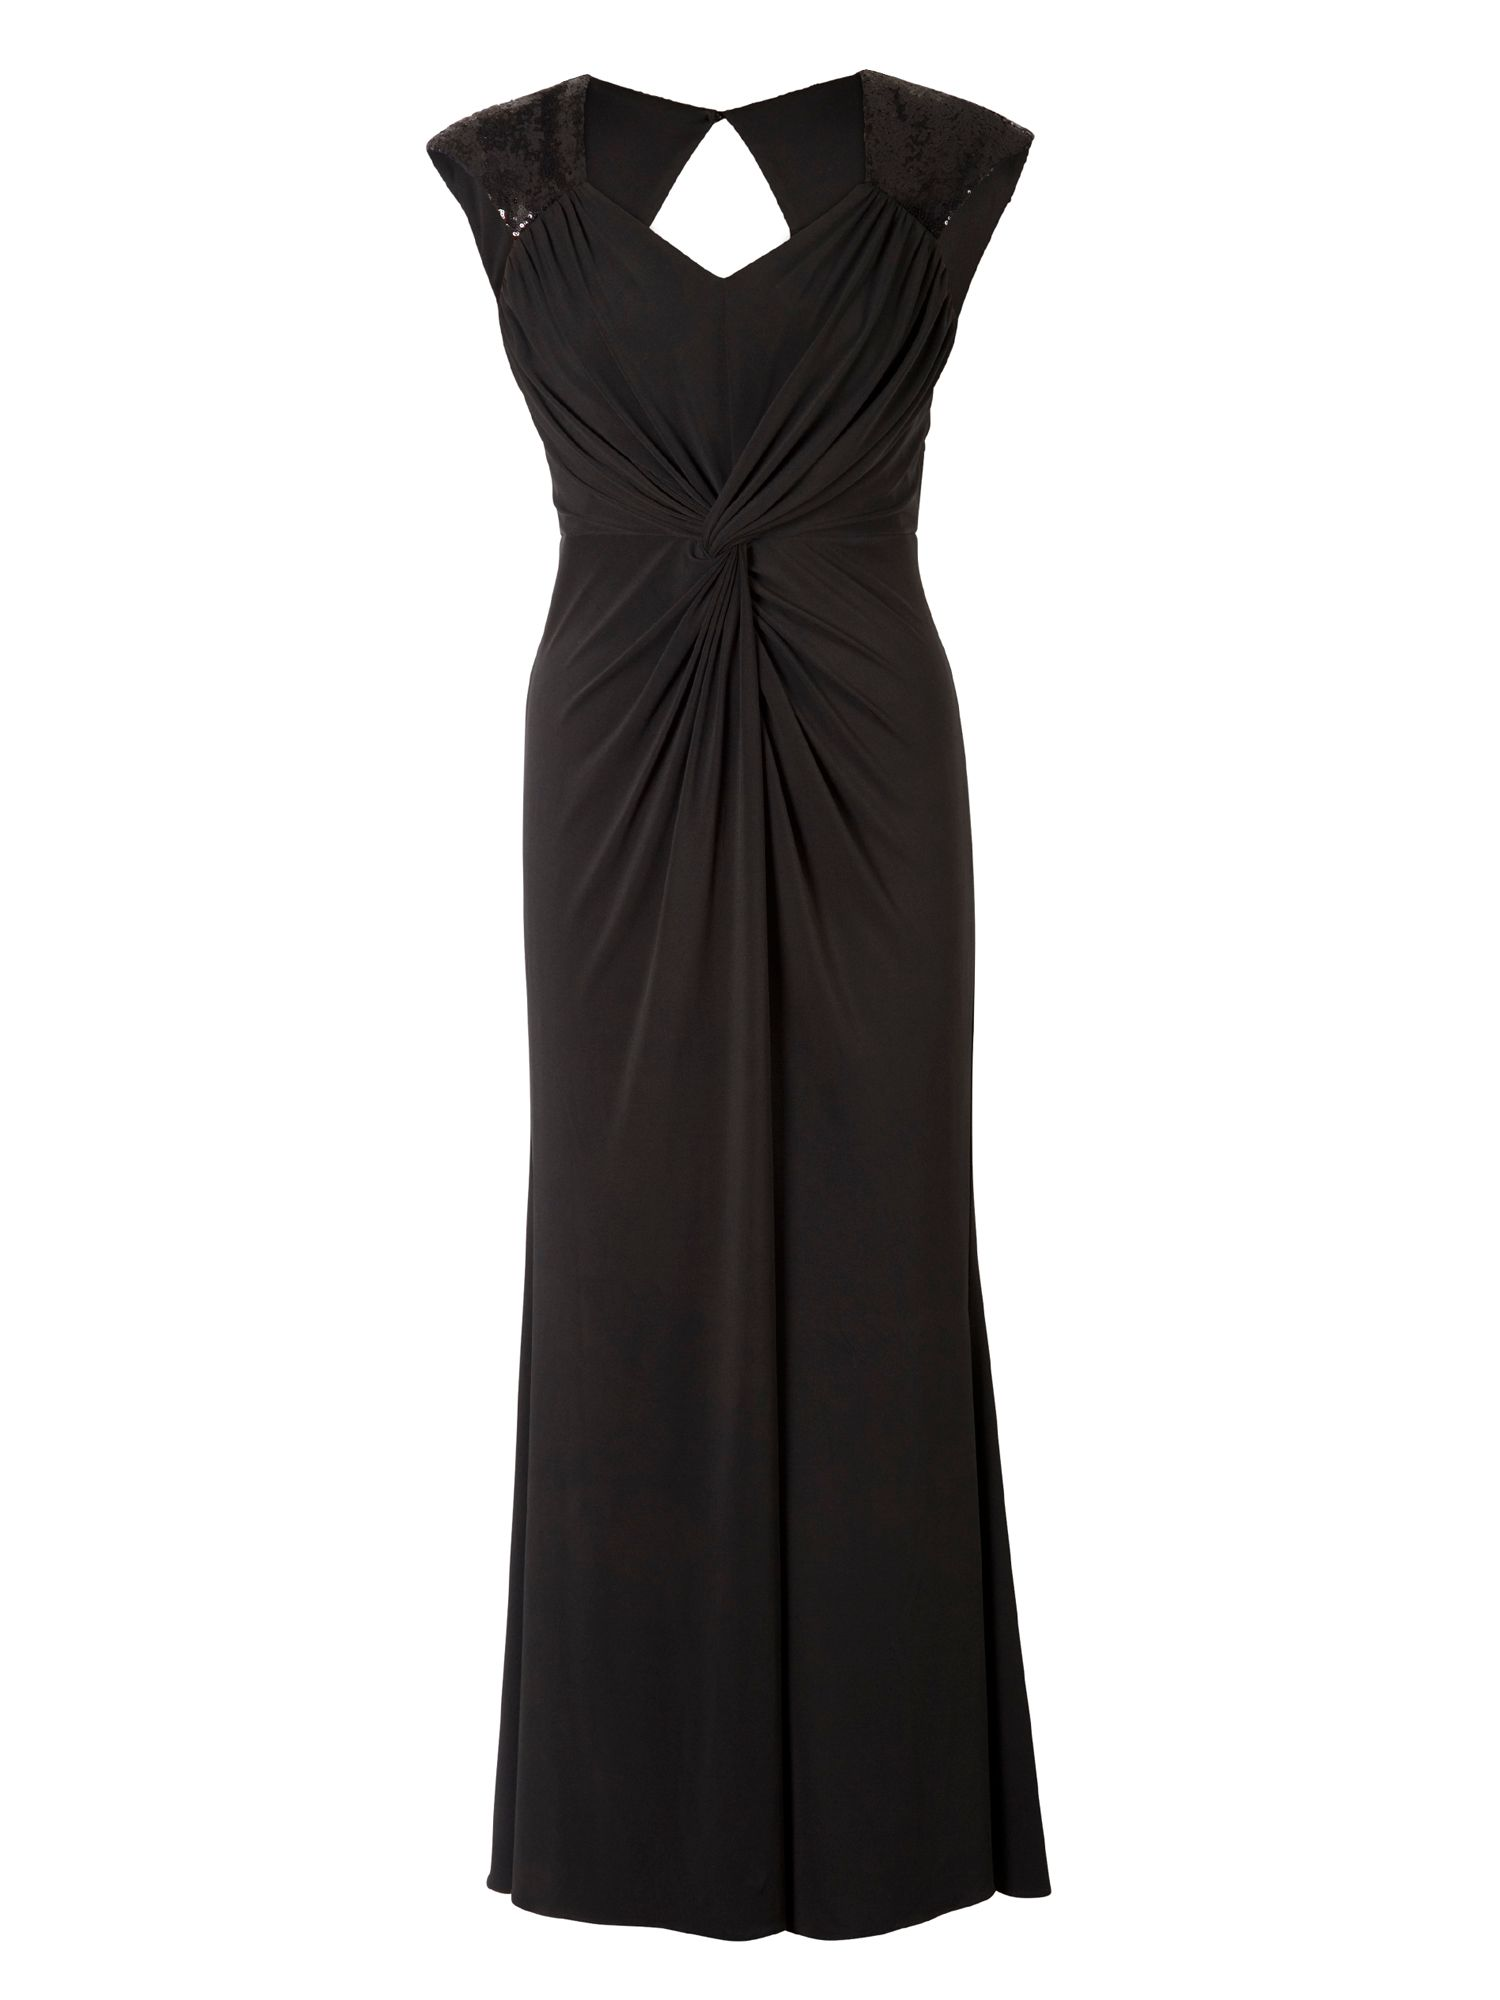 1940s Dresses and Clothing UK Chesca Plus Size Maxi Dress with Sequin Trim £155.00 AT vintagedancer.com